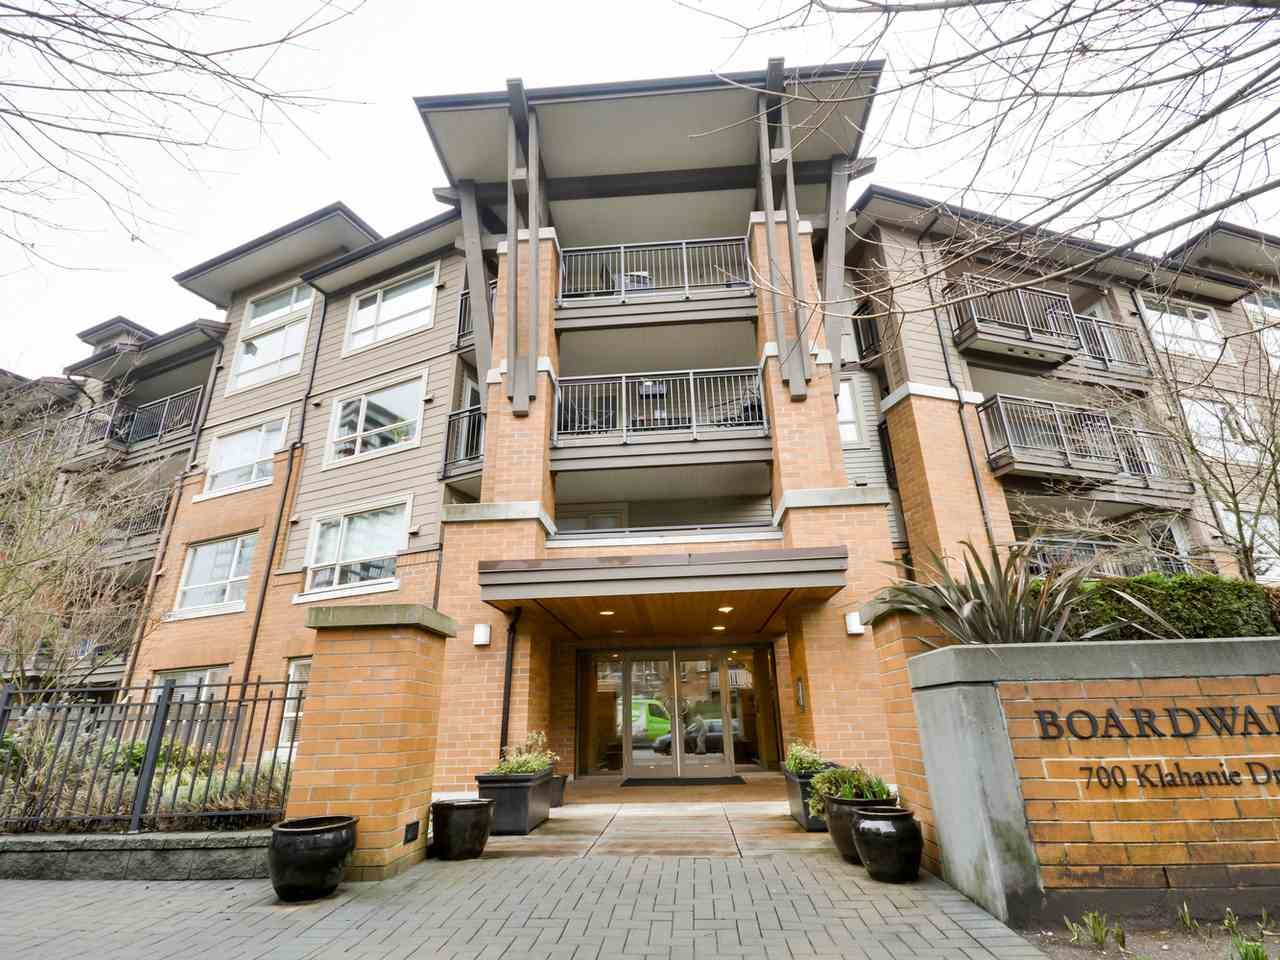 "Main Photo: 112 700 KLAHANIE Drive in Port Moody: Port Moody Centre Condo for sale in ""BOARDWALK"" : MLS® # R2035645"